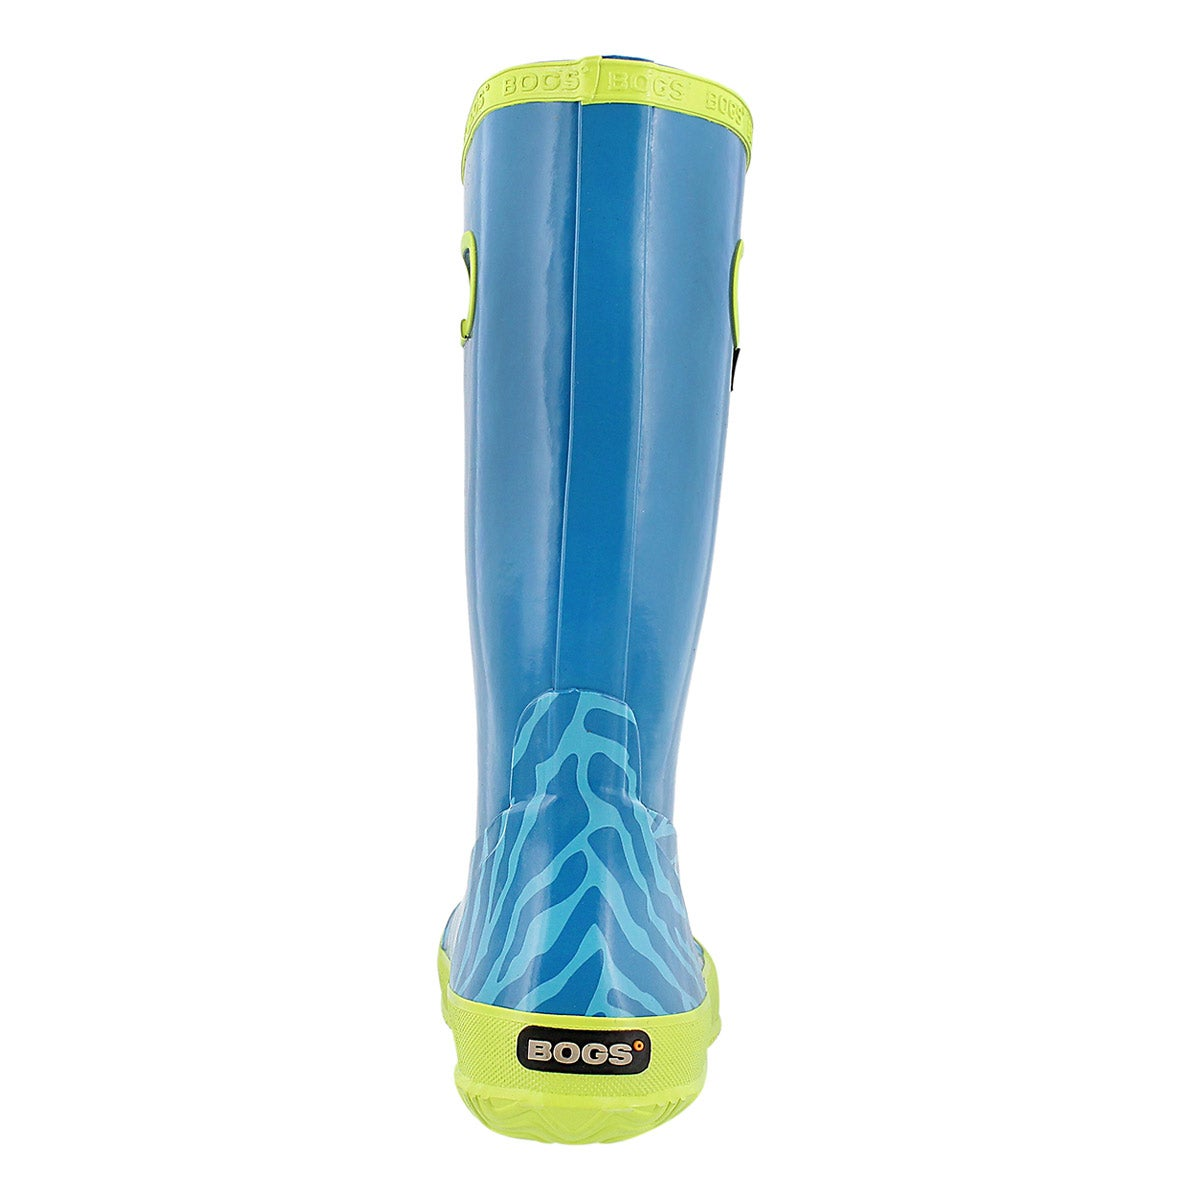 Gls Rainboot Zebra aqua rain boot